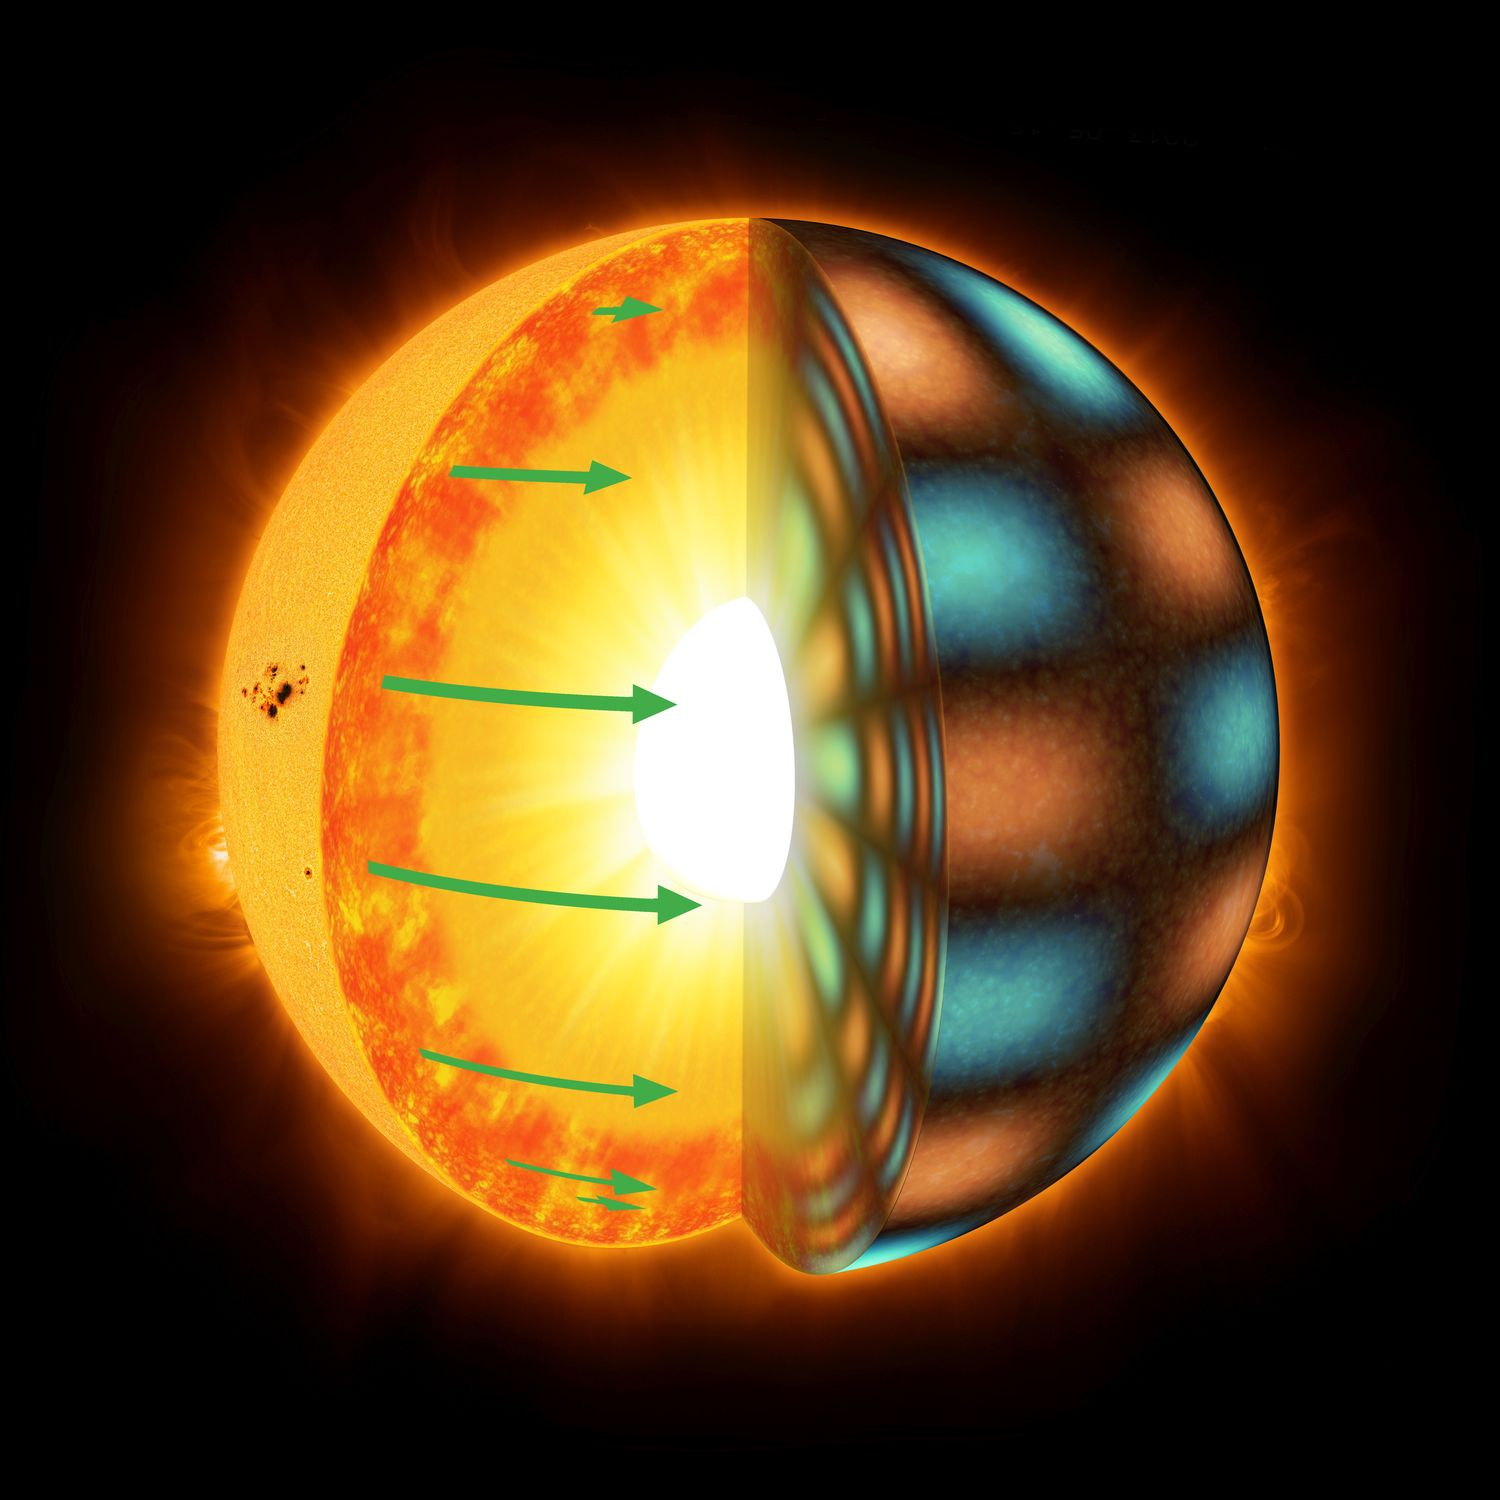 Sun-like stars rotate differentially, with the equator rotating faster than the higher latitudes. The green arrows in the figure represent rotation speed in the stellar convection zone. Differential rotation is inferred from the oscillatory motions of the star seen as orange/blue shades on the right side of the picture. Differential rotation is thought to be an essential ingredient for generating magnetic activity and starspots.